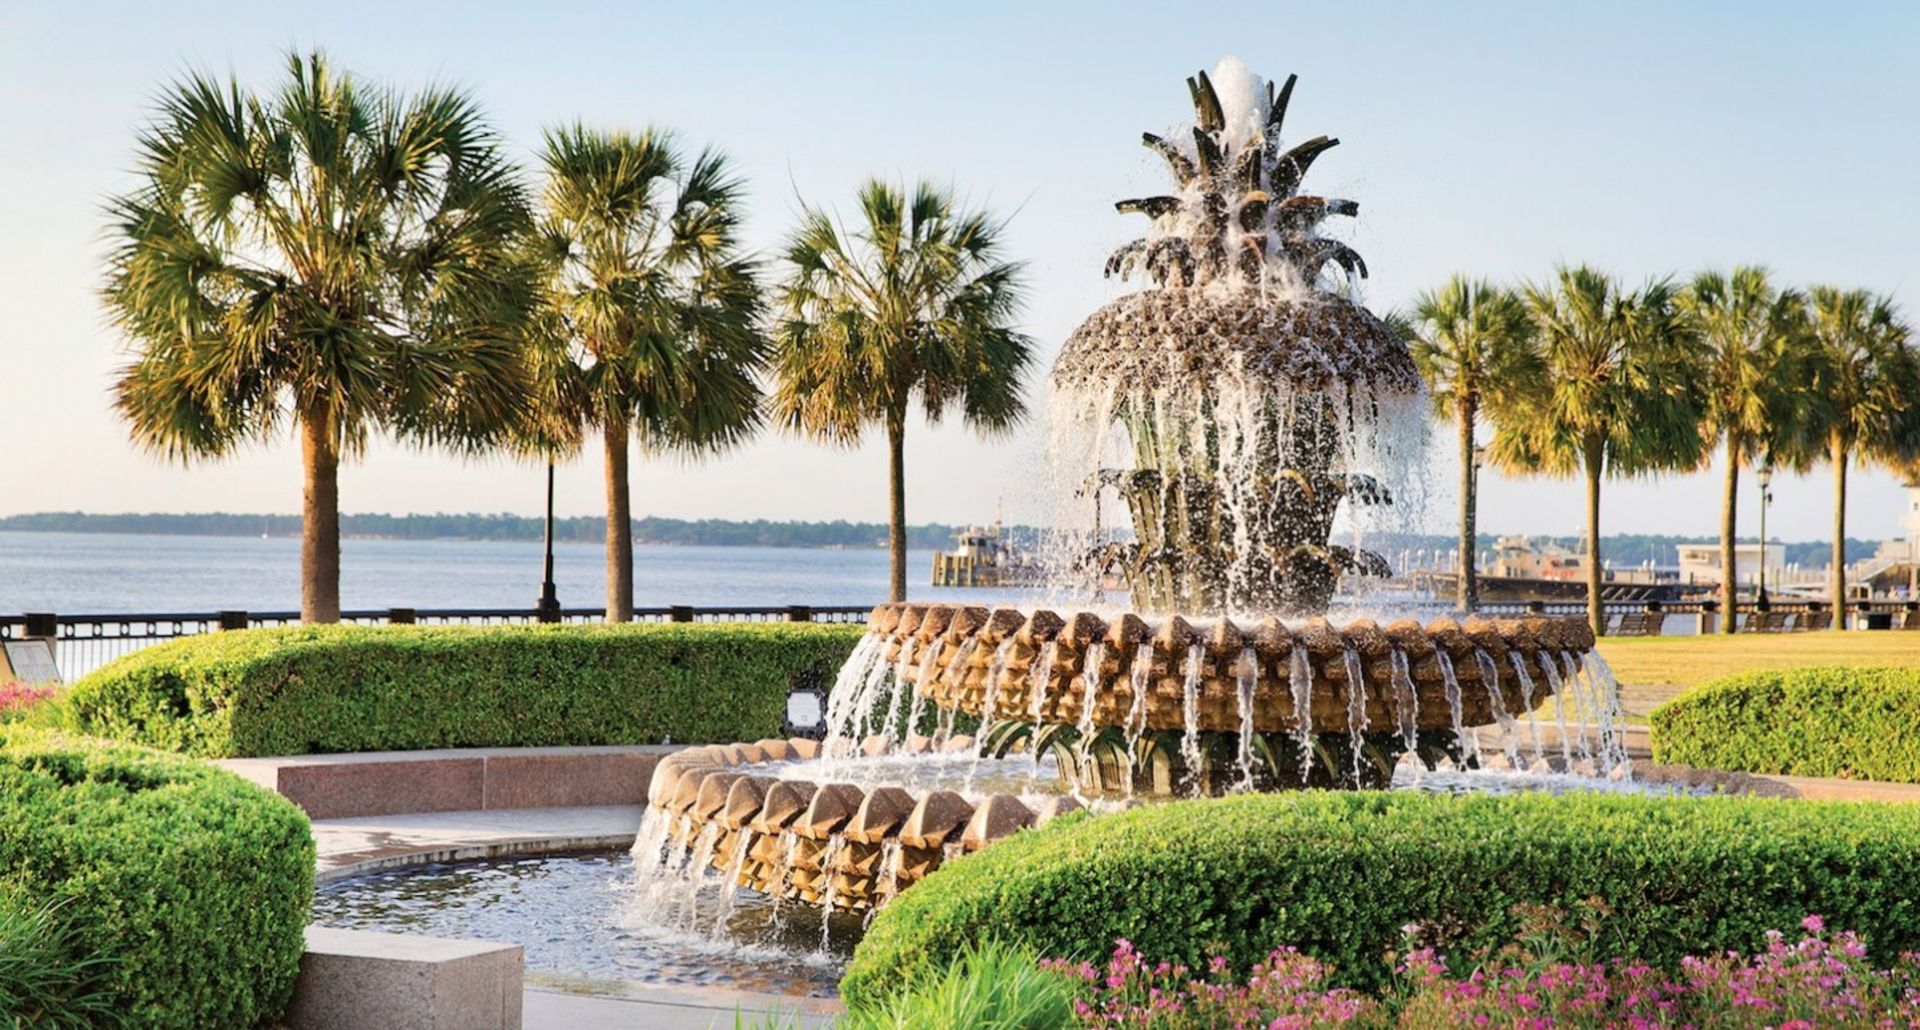 11 EVENTS TO ATTEND THIS SPRING IN CHARLESTON!